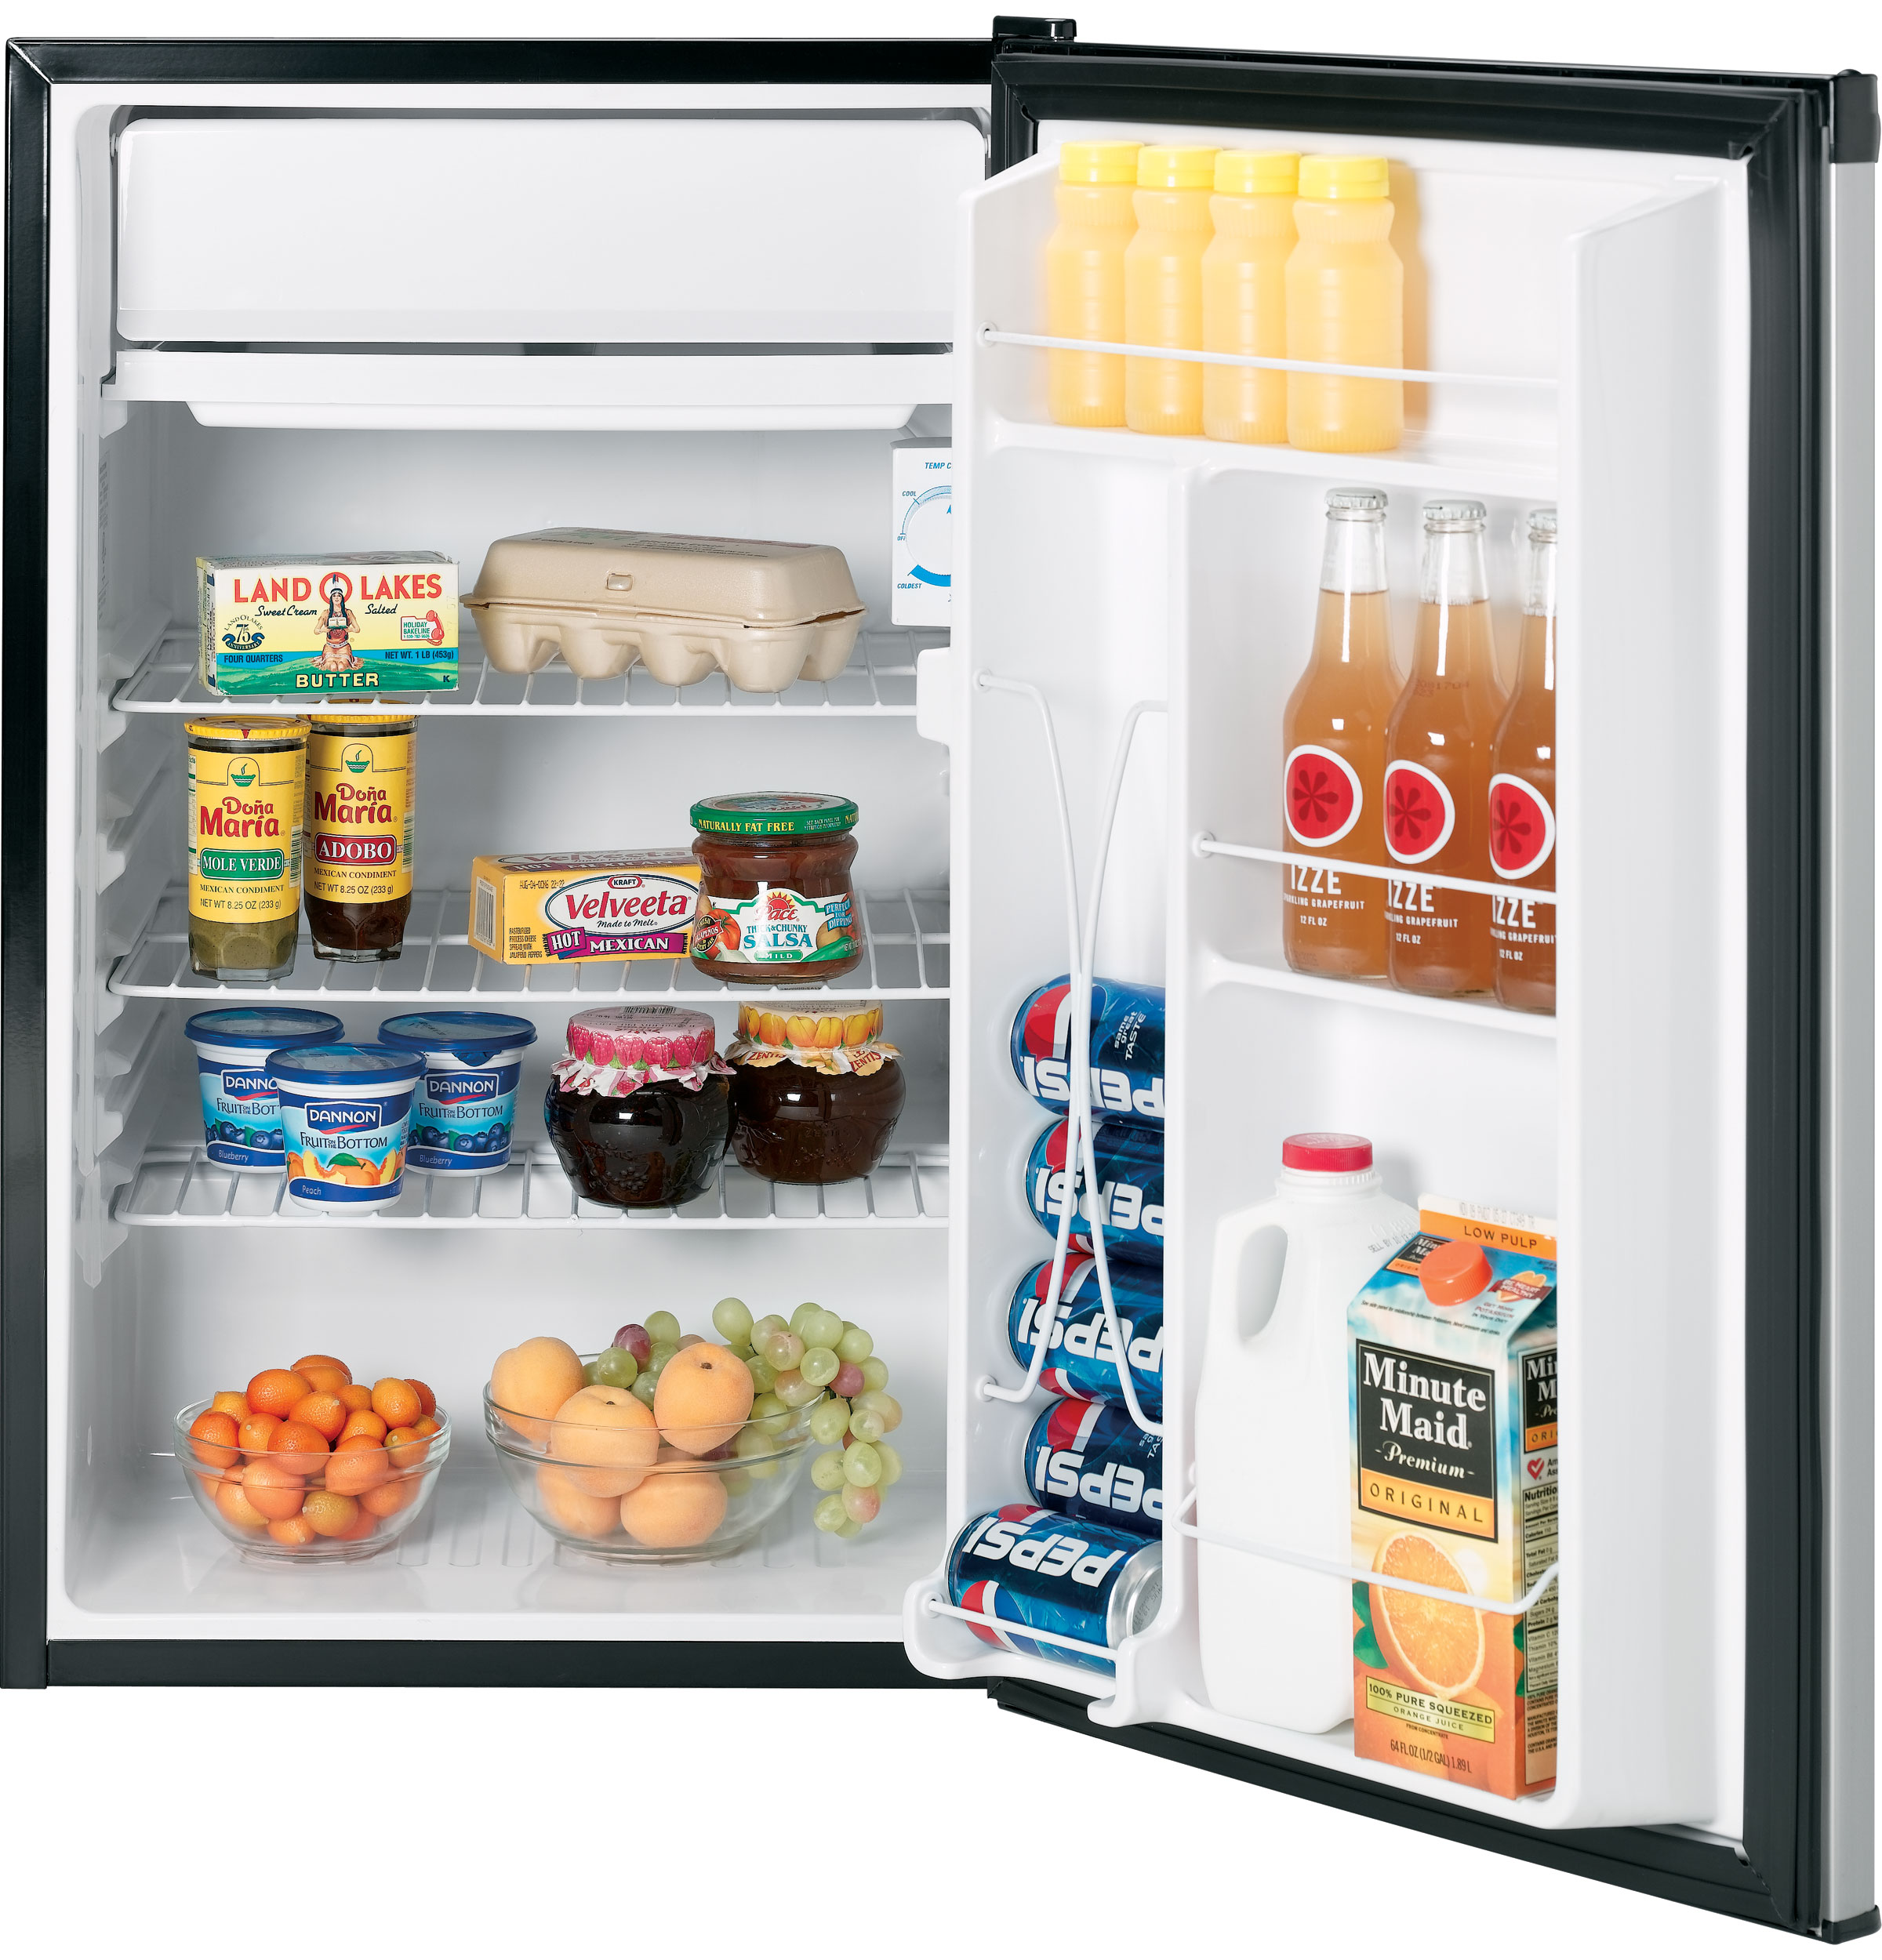 Ge Compact Refrigerator Gmr04hascs Appliances Fridge Schematics Product Image